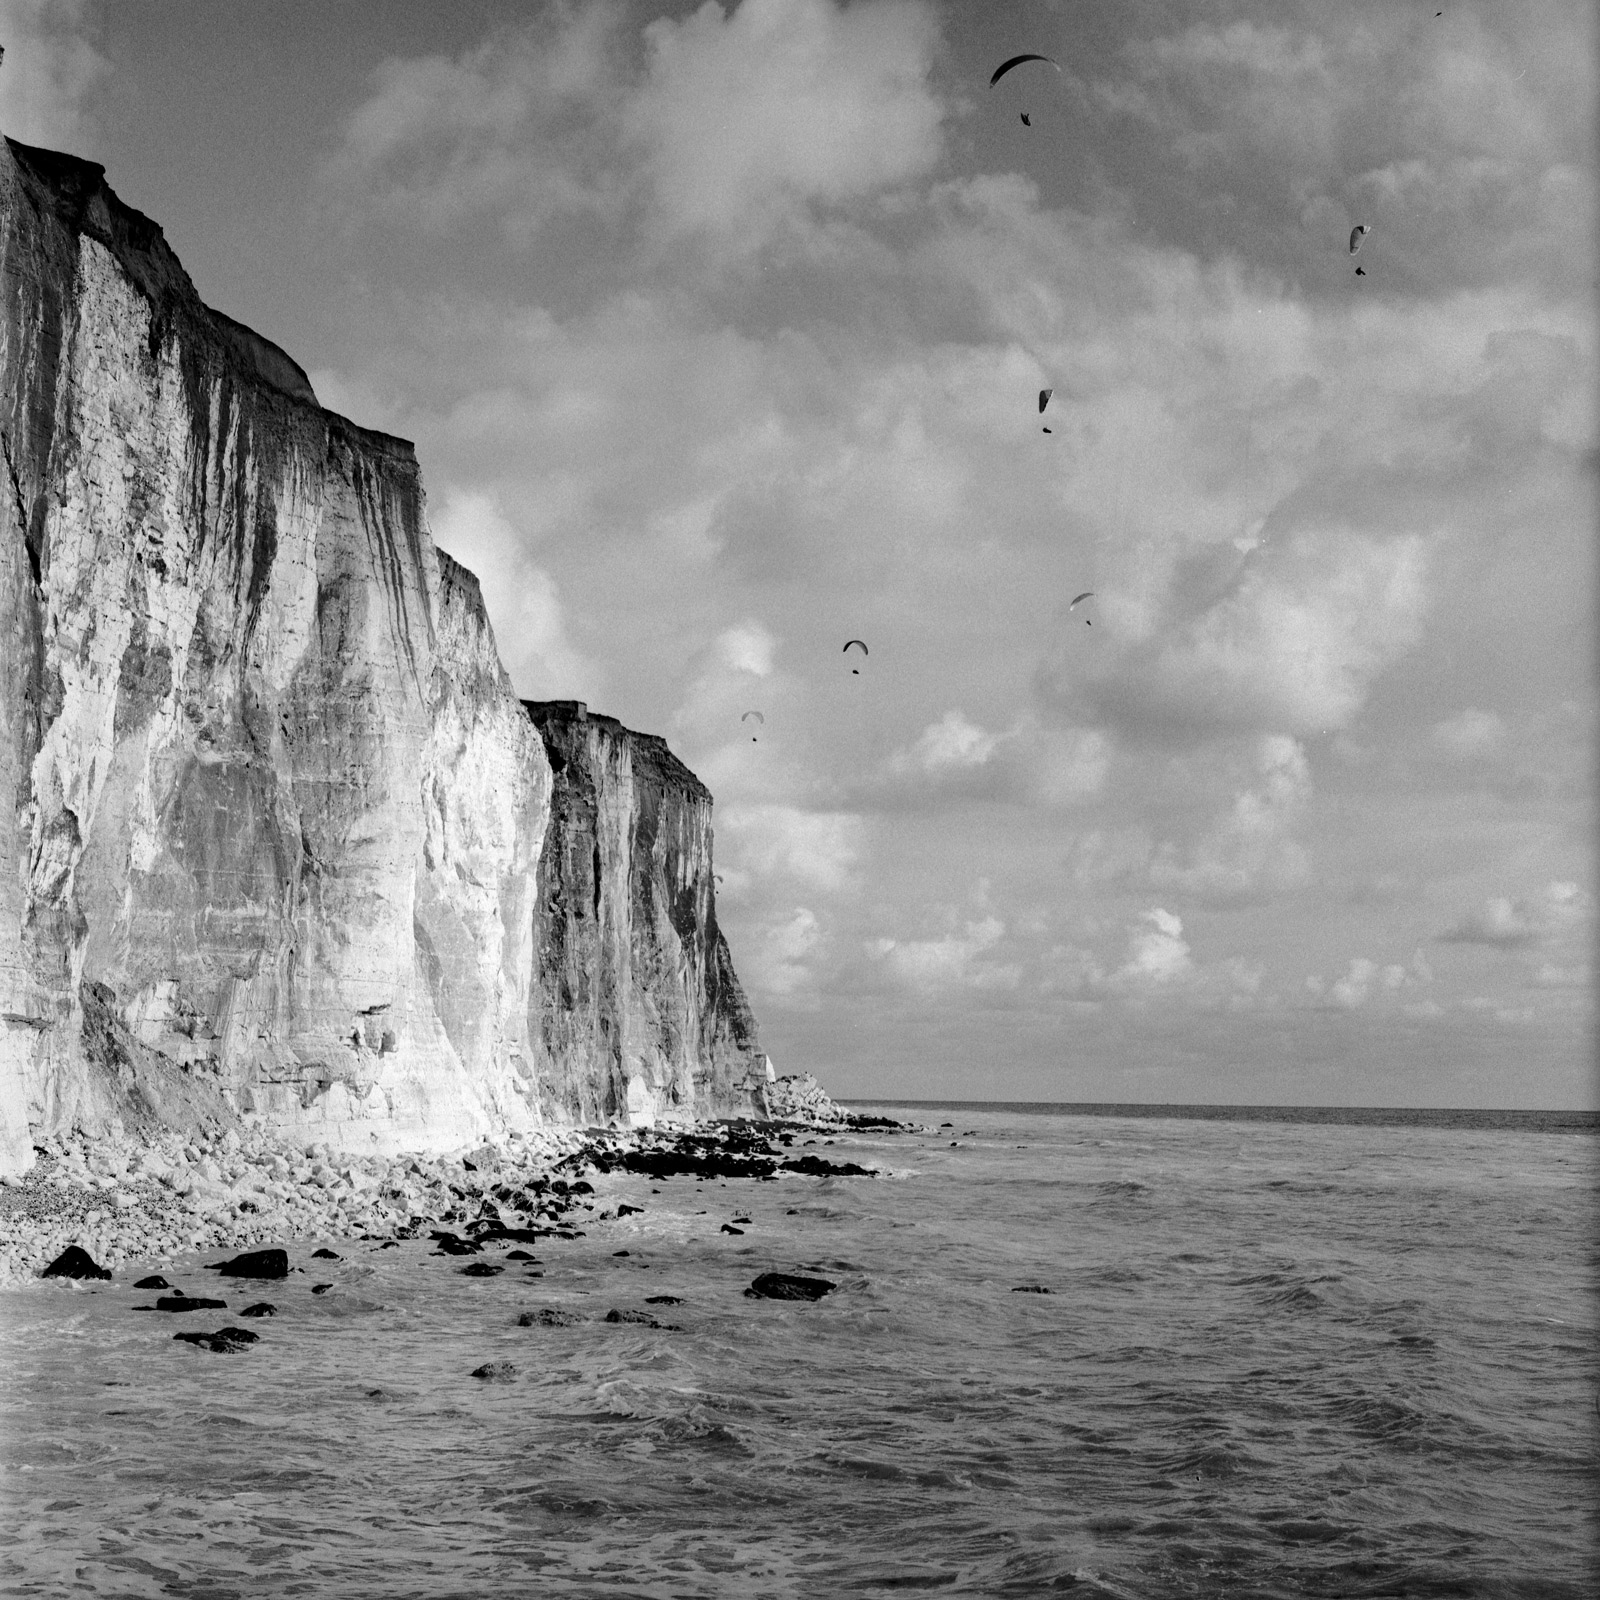 Paragliders, Image was photographed in the South East of England. Situated on the Peacehaven Promenade walk in 2020. Part of a wider Observations series. Using a Hasselblad 6x6 camera and Ilford FP4 125iso film, hand developed in Ilfosol 3 chemicals in 2020. Black & White archival print using traditional darkroom chemical process. Black & White archival print using traditional darkroom chemical process. Using Ilford Multigrade RC Deluxe satin paper. 10x8in print (20.3cm x 25.4cm) Medium weight 190 Limited edition print £100 GBP